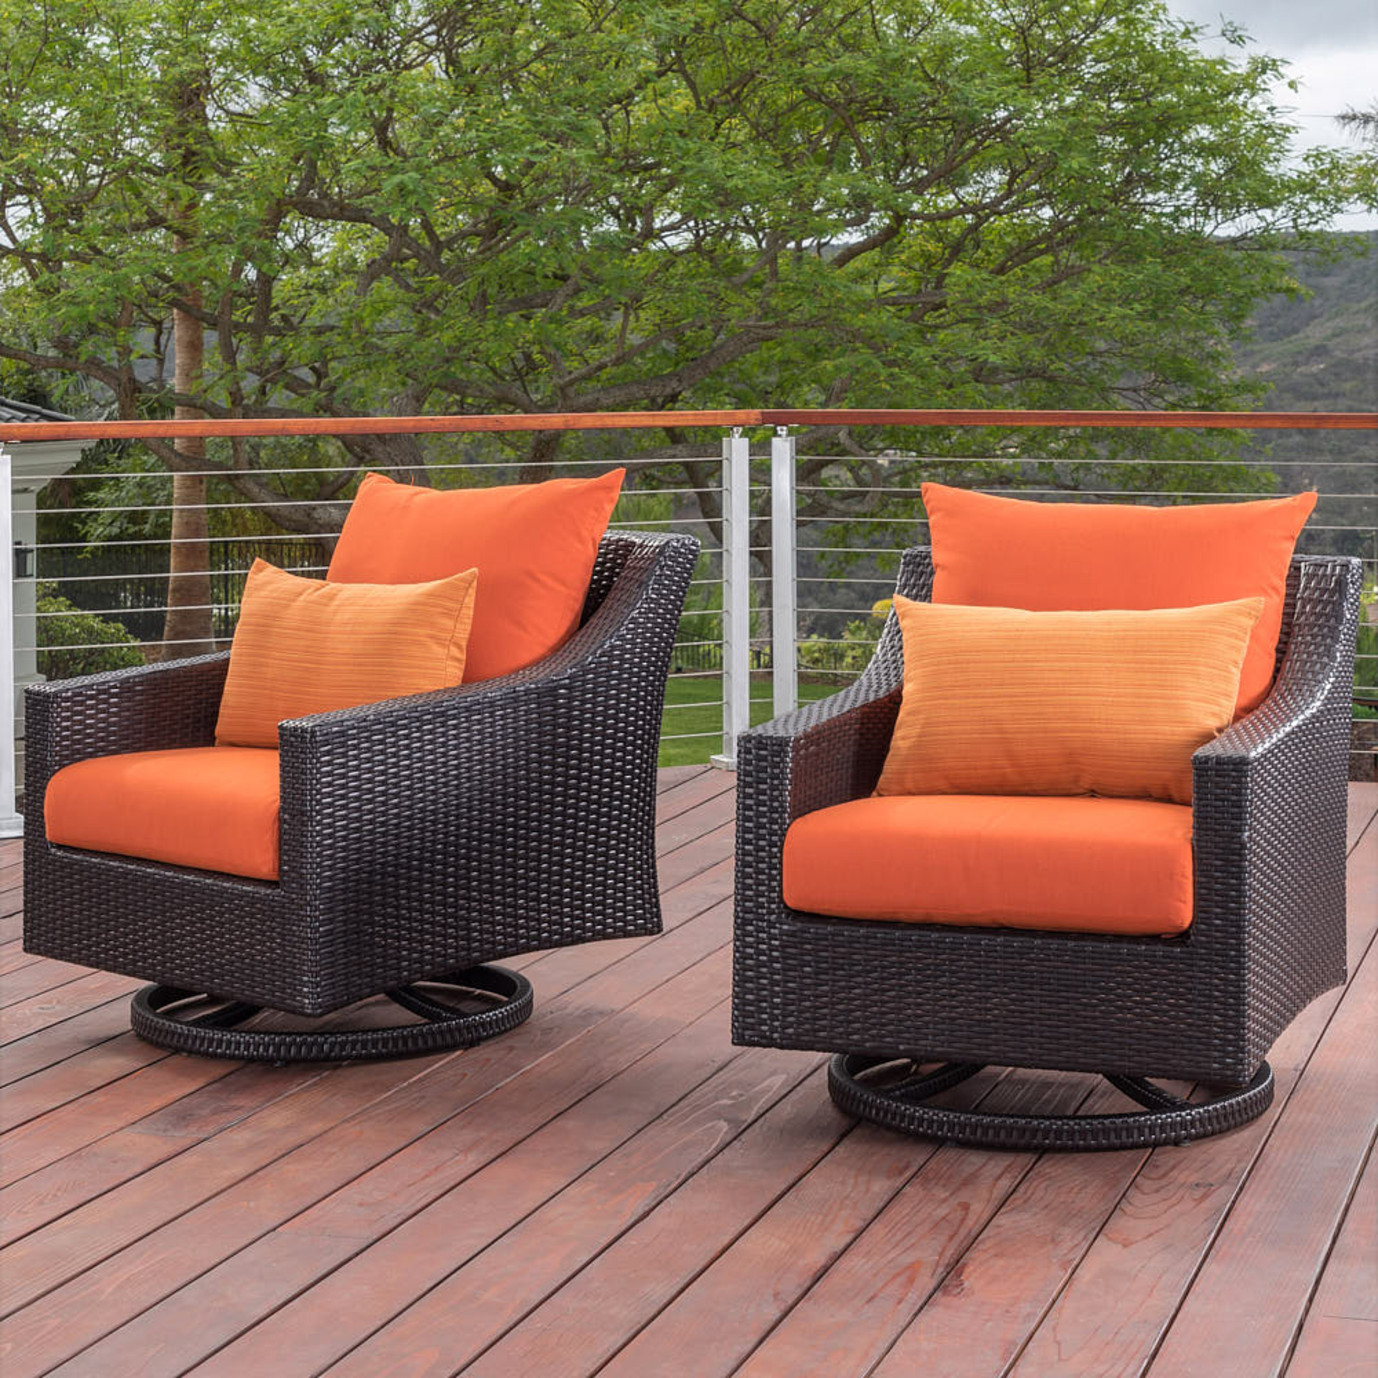 Deco™ Motion Club Chairs in Slate Gray